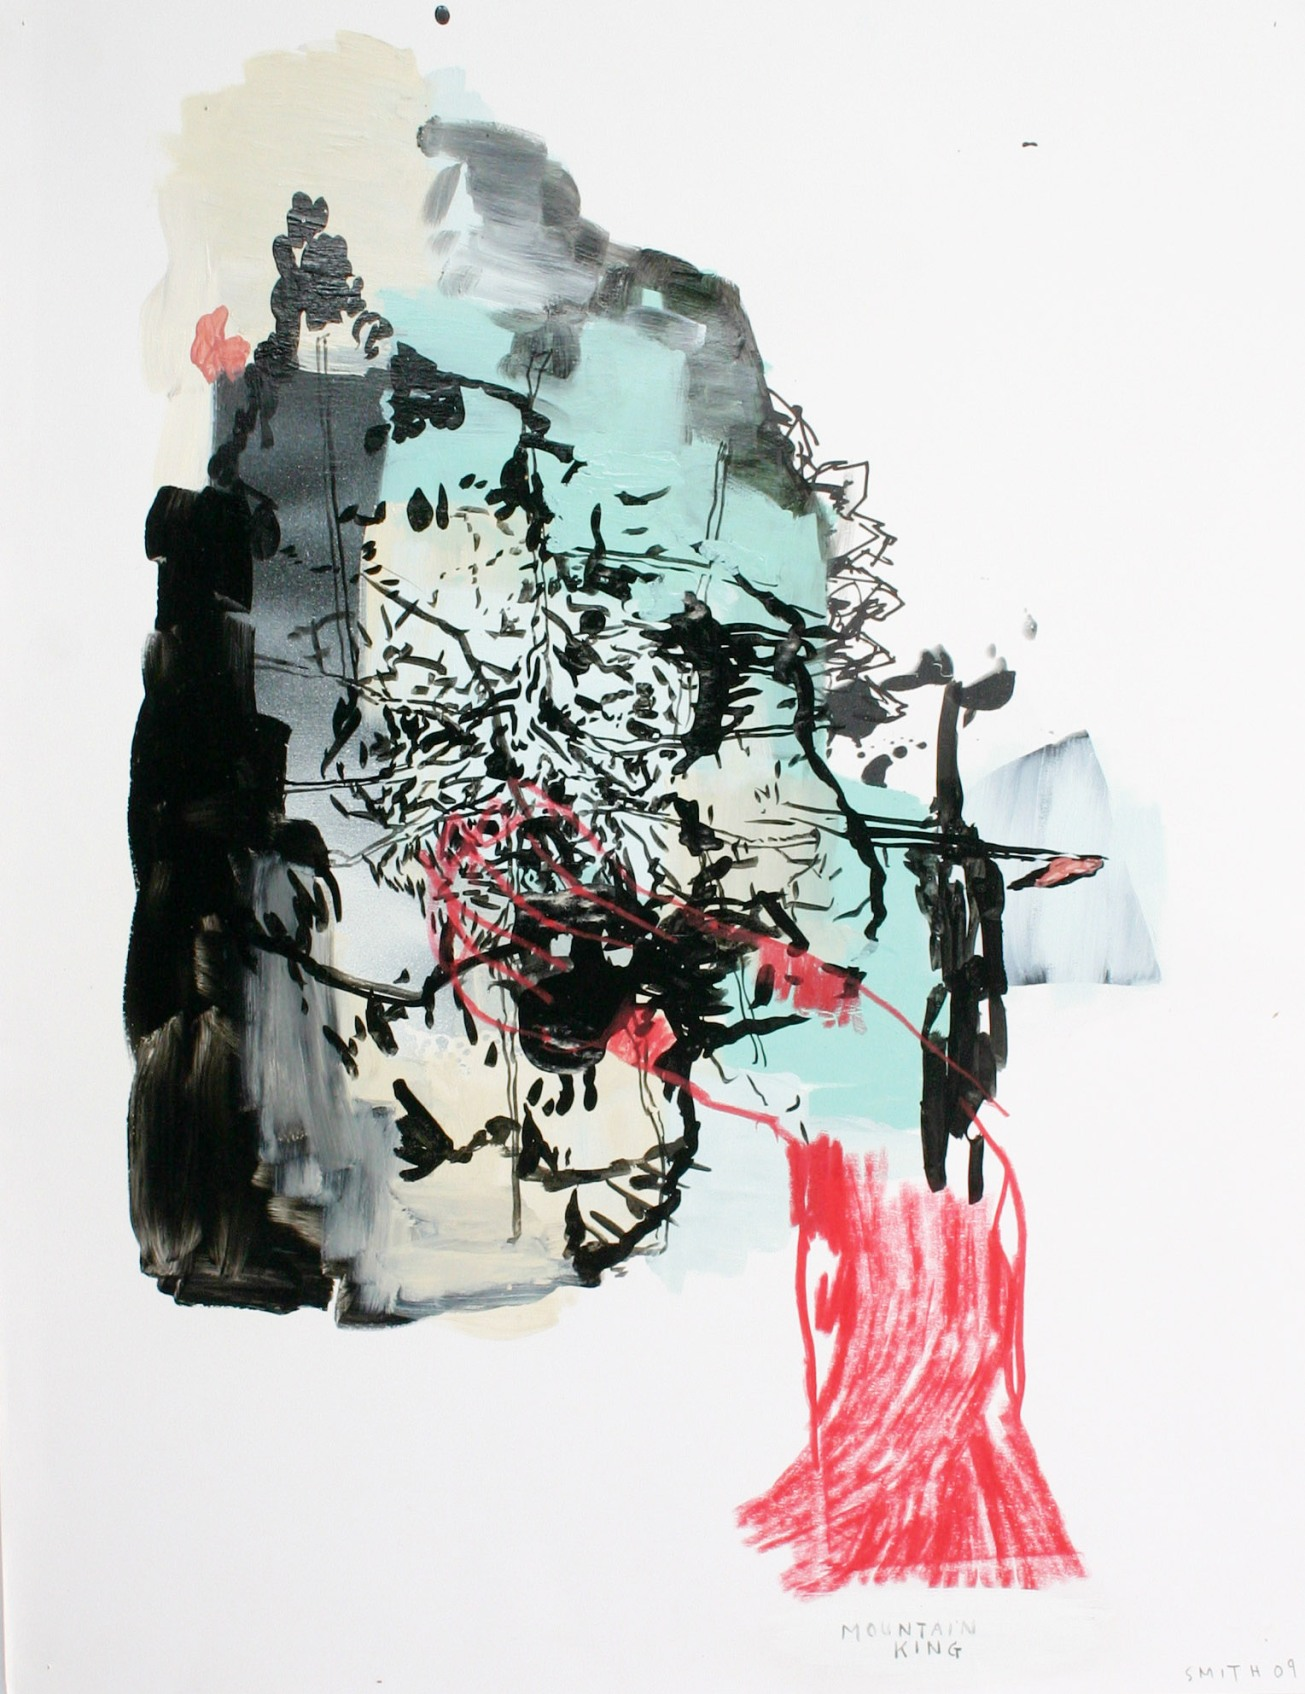 Emma Smith, Hecate, Mixed media on paper, 420 x 594 mm, 2010